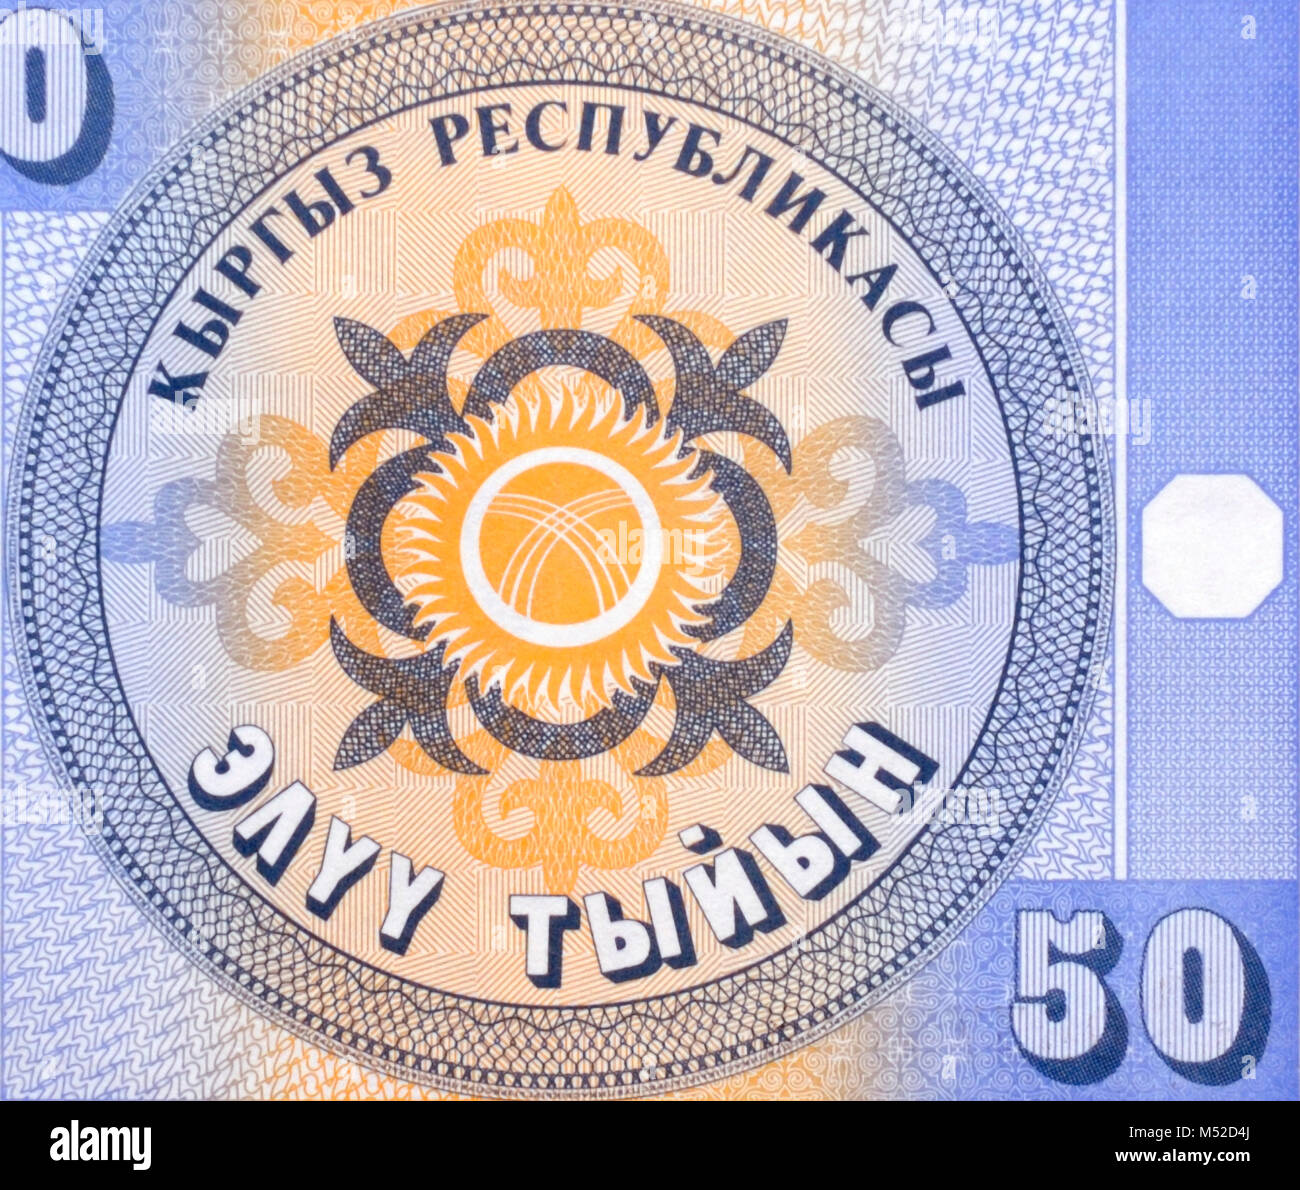 Kyrgyzstan Fifty 50 Tyiyn Bank note - Stock Image